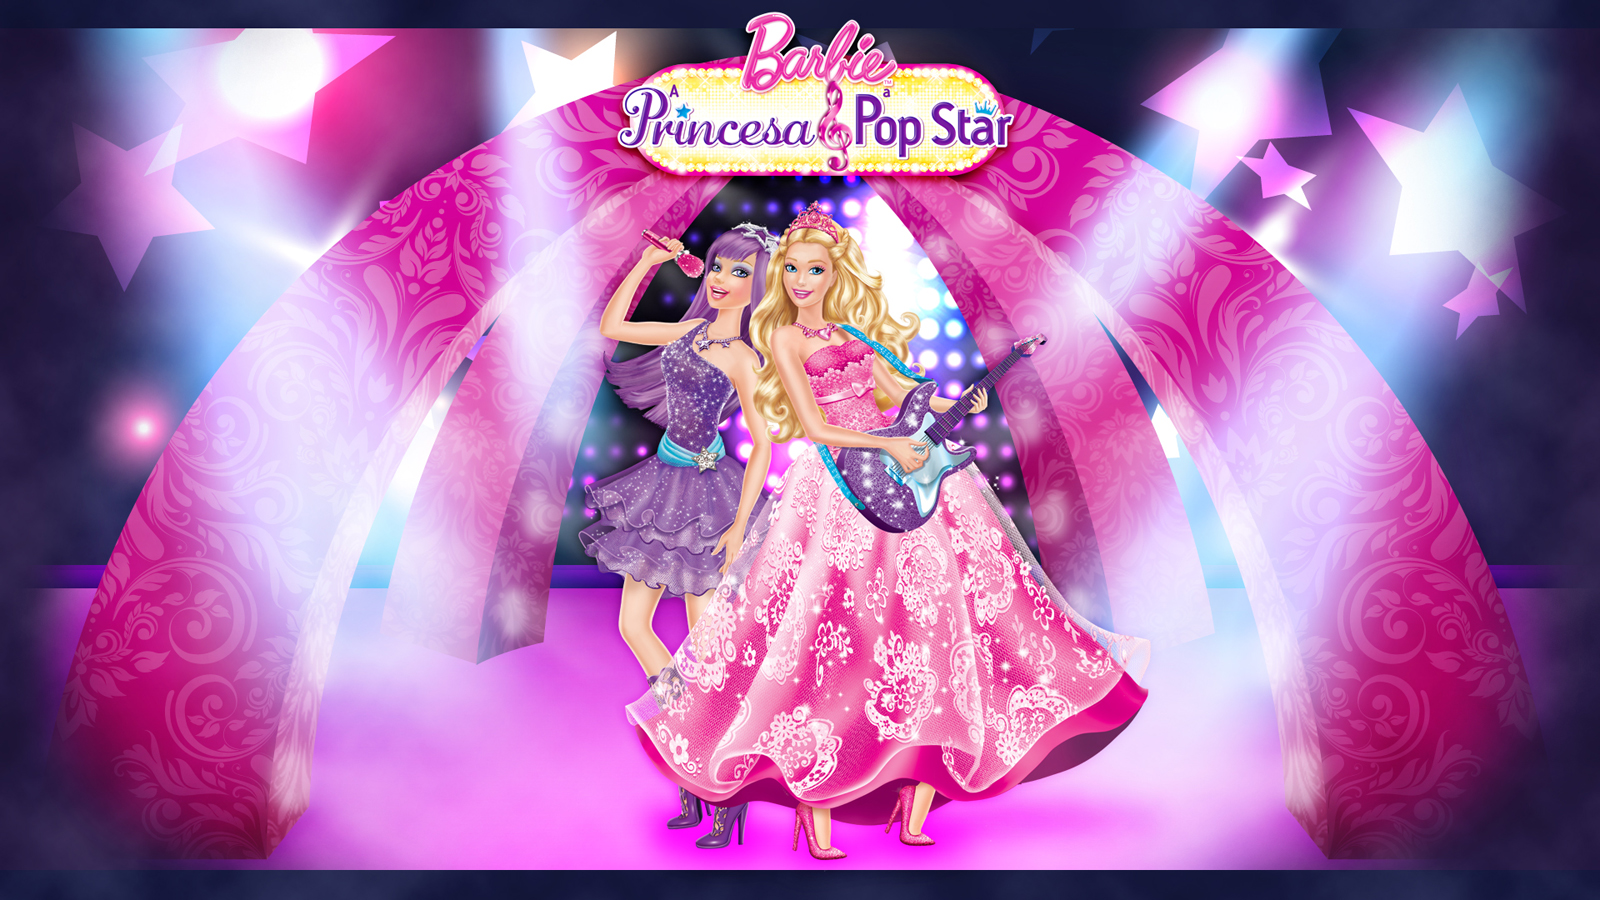 Barbie The Princess And Pop Star Wallpaper